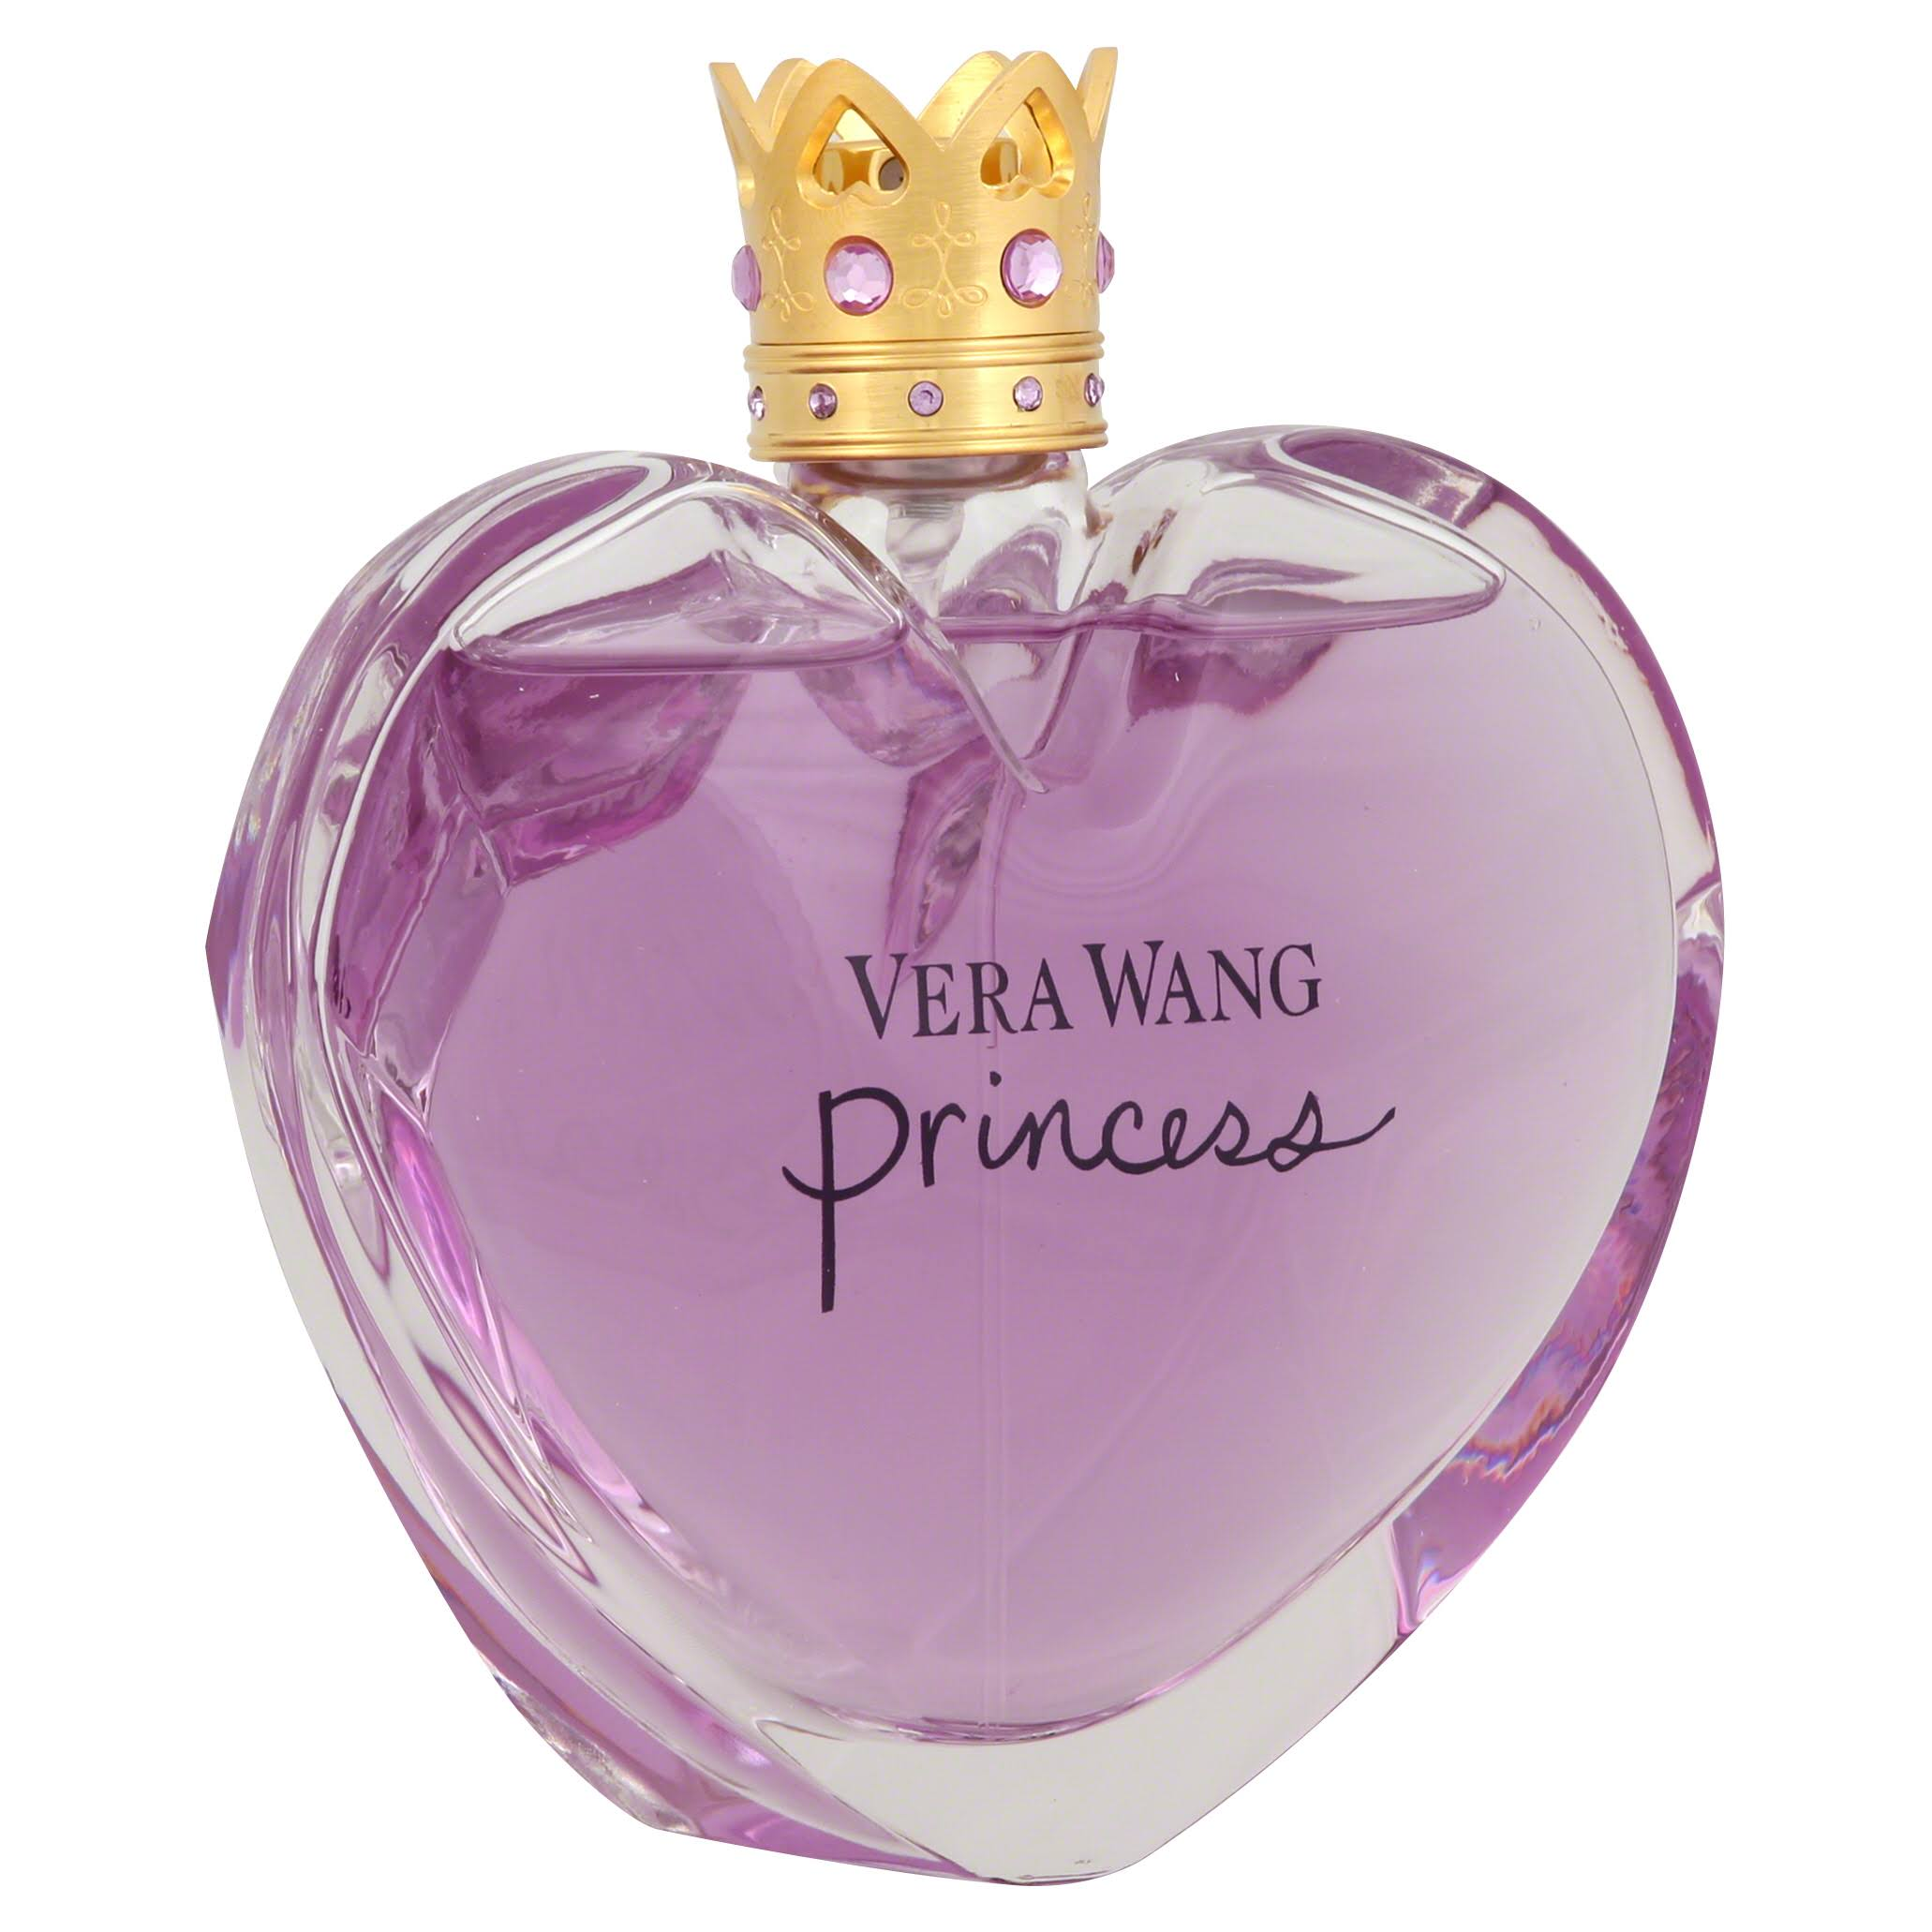 Vera Wang for Women Eau de Toilette Spray - Princess, 100ml